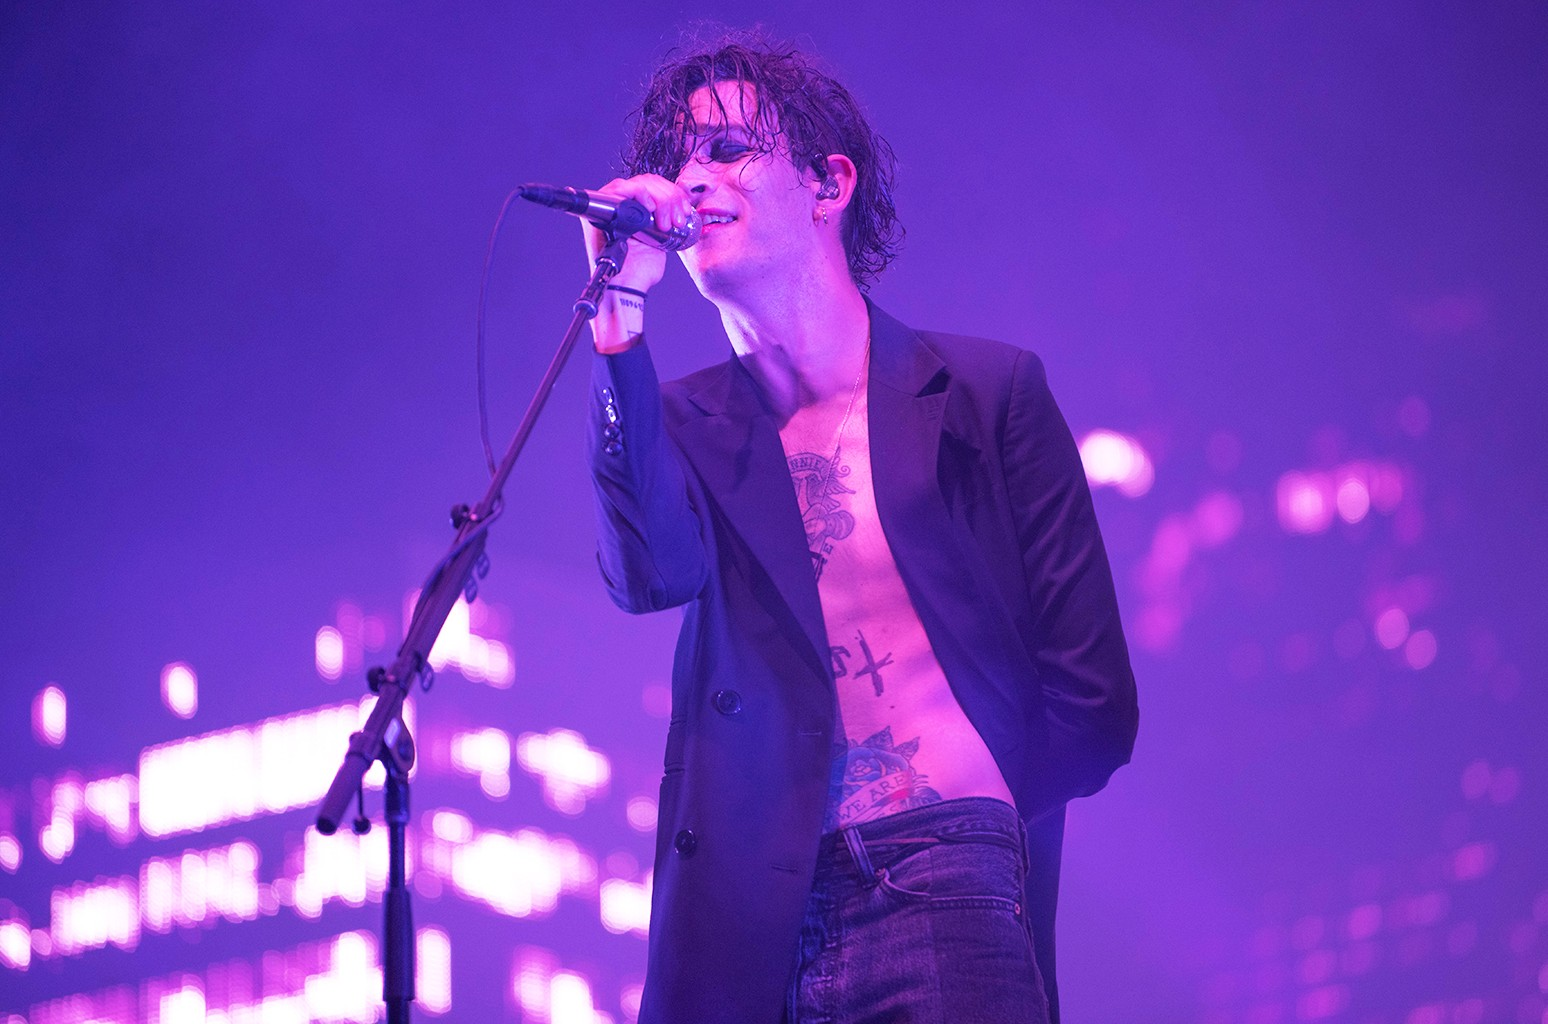 Matty Healy's had a 'couple of relapses' since beating his heroin addiction